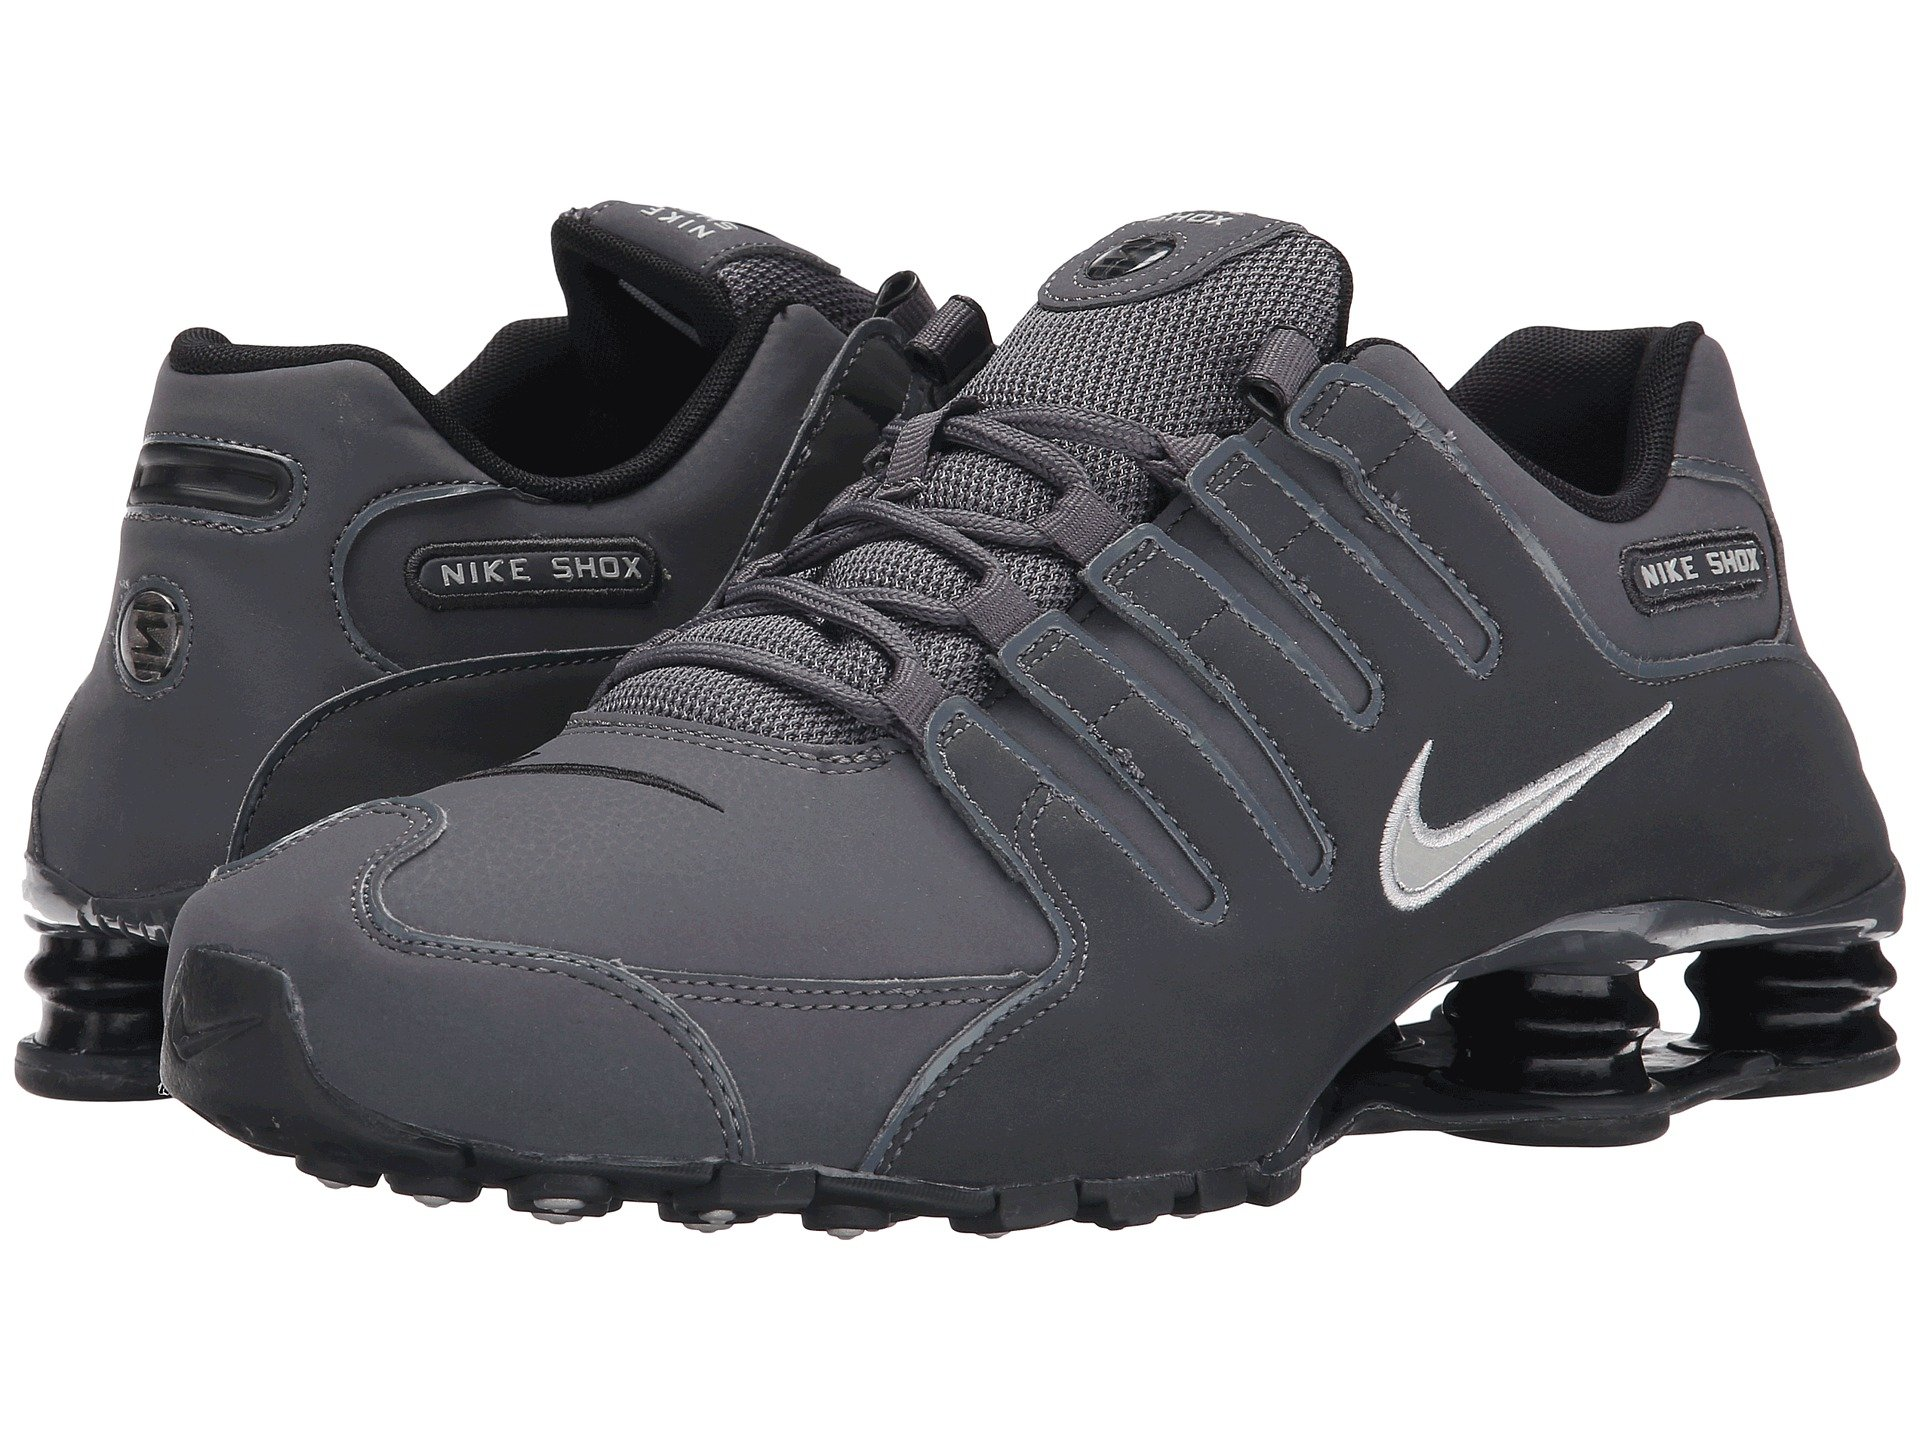 outlet store sale detailed look online for sale nike shox shoes